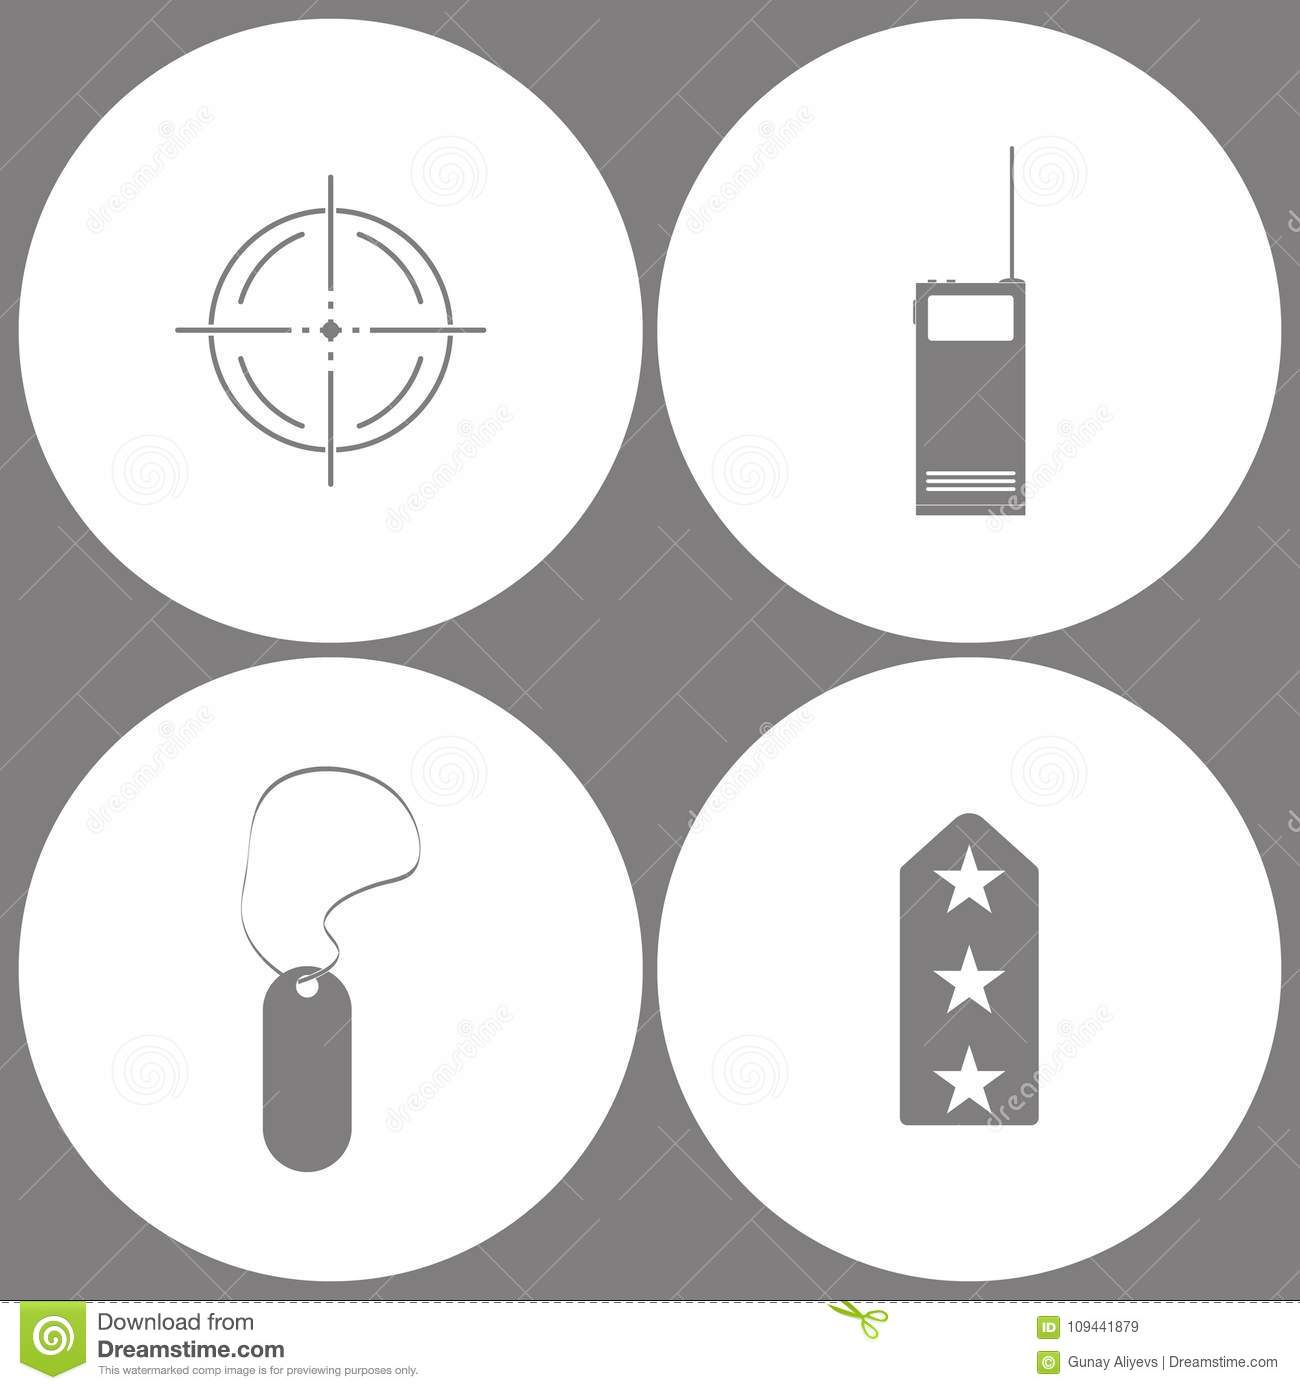 Vector Illustration Set Office Army Icons Elements Of Target Two Circuit Diagram Walkie Talkie Way Radio Military Tag And Rank Shoulder Straps Icon On White Background